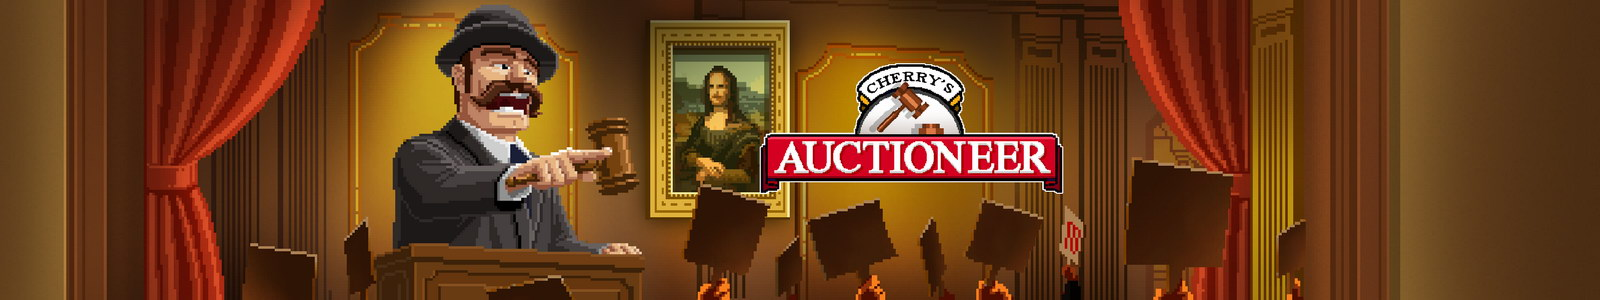 AUCTIONEER_full